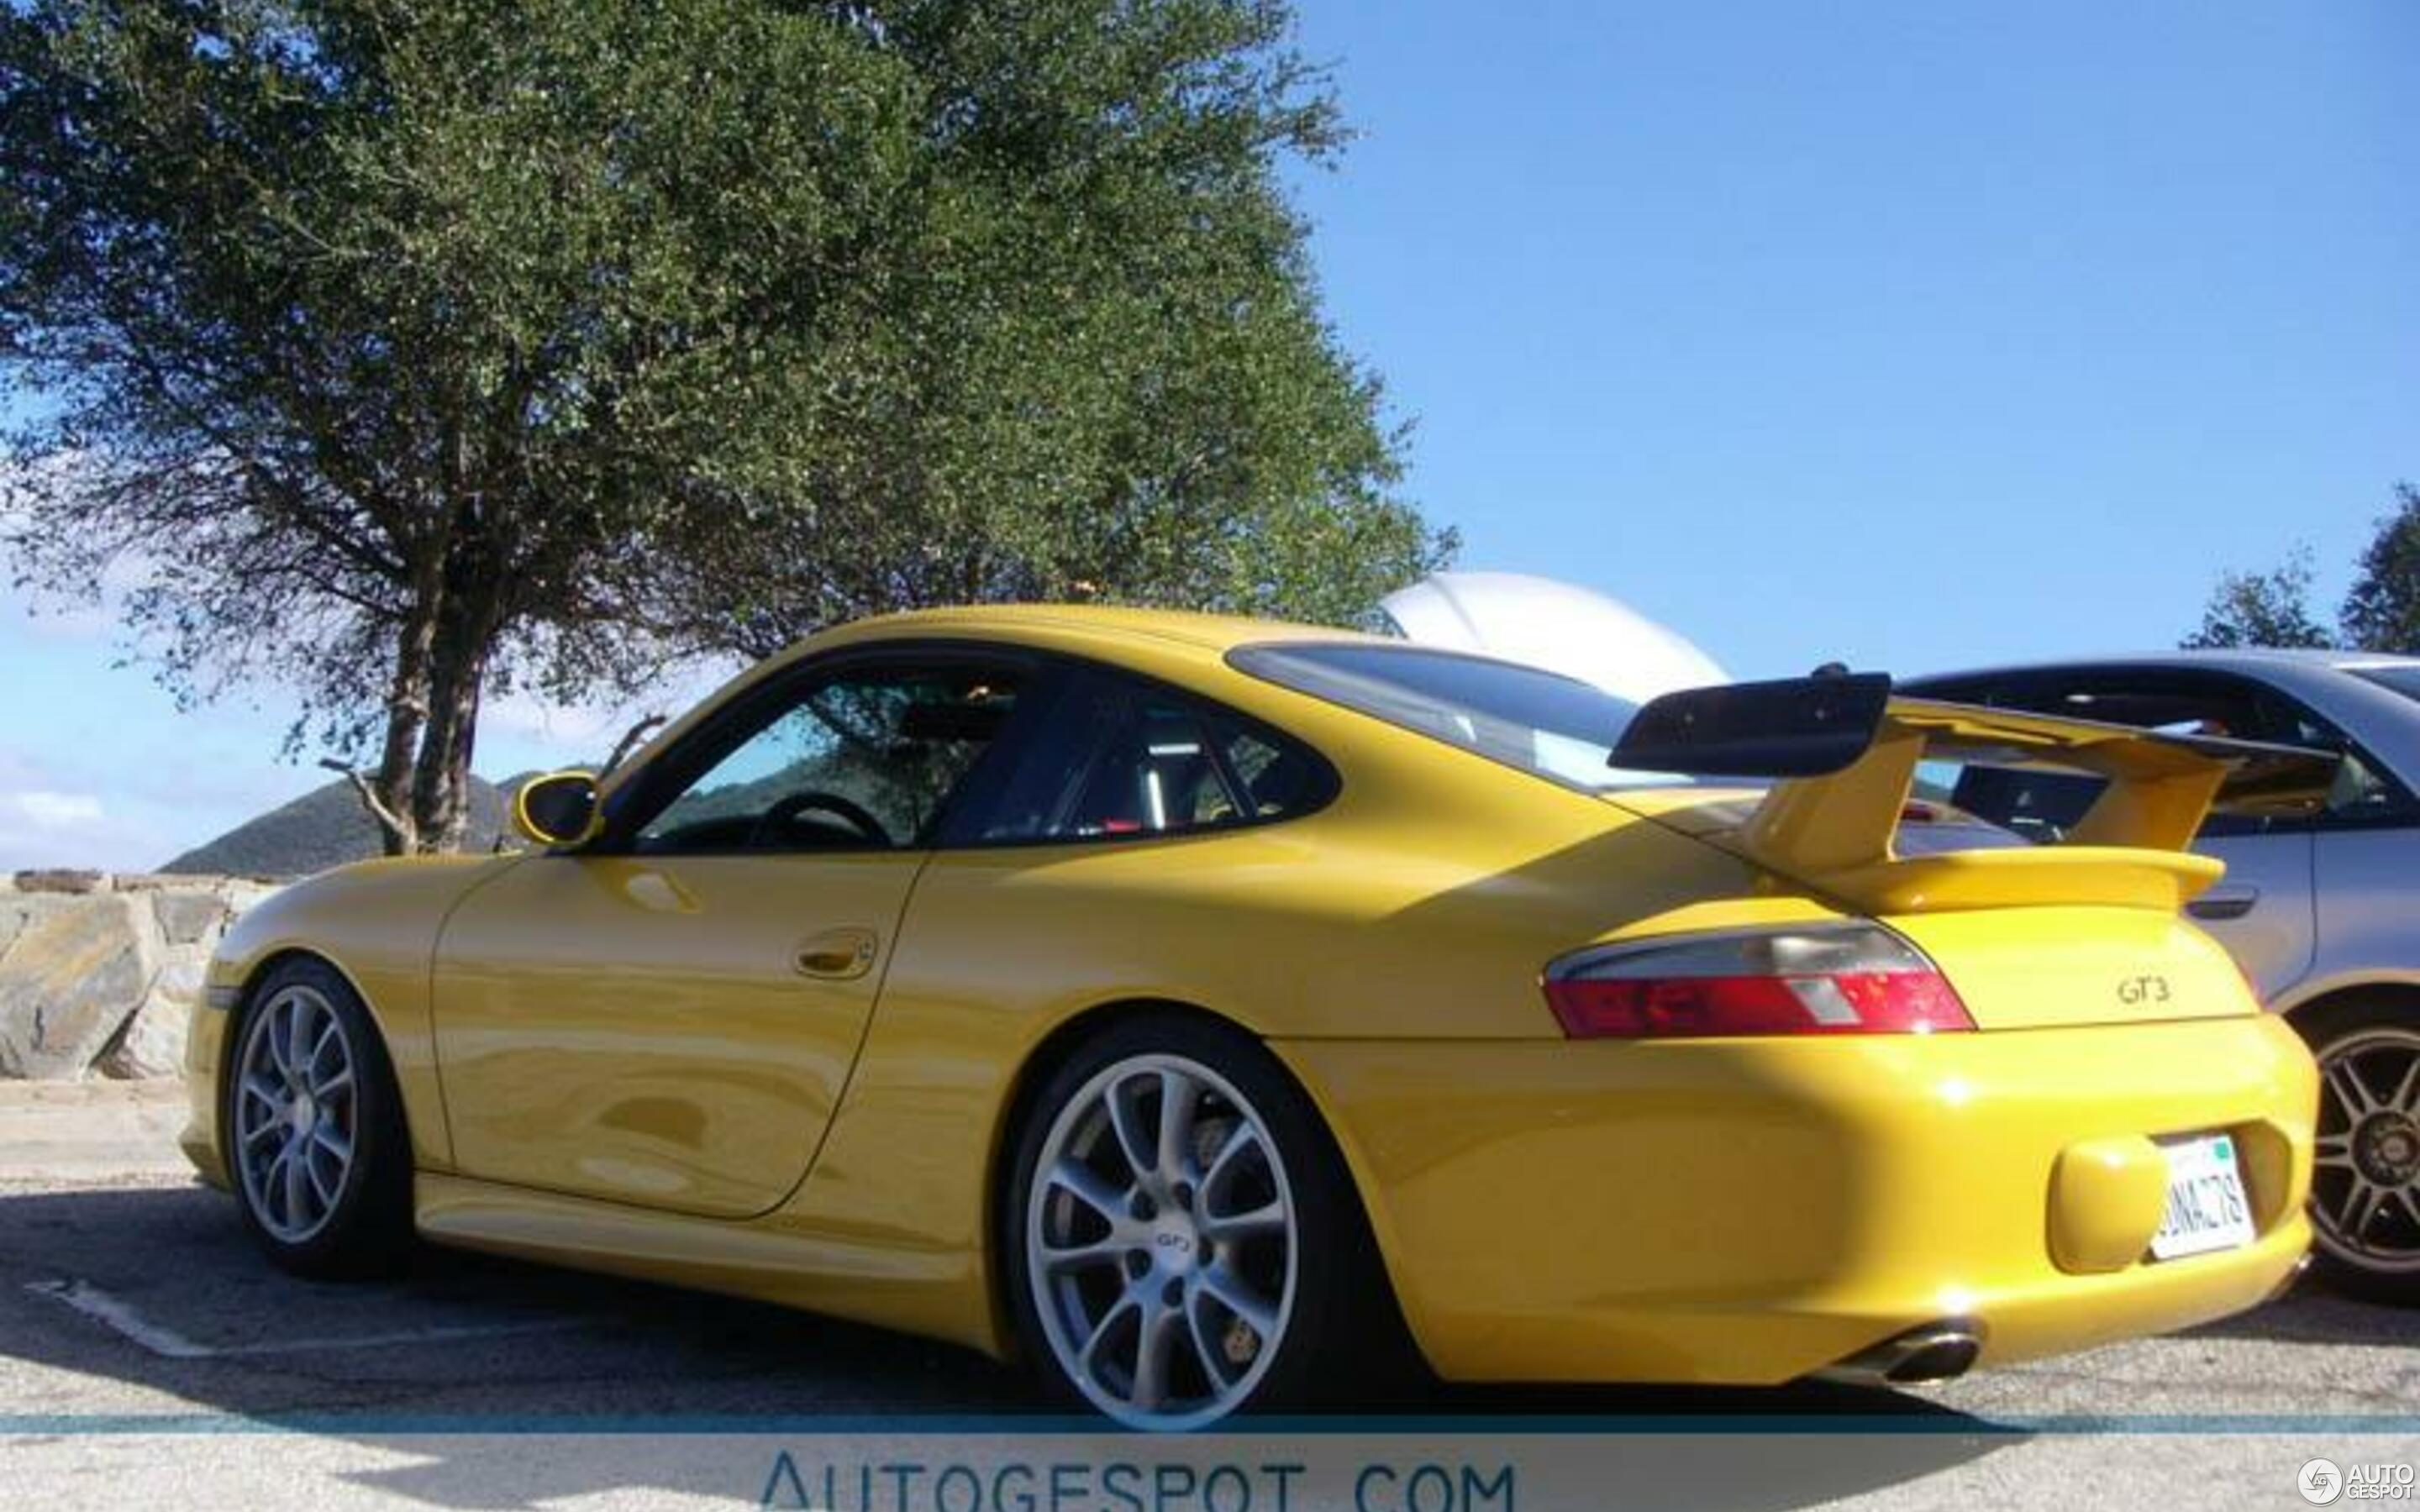 Porsche Woodland Hills >> Porsche 996 GT3 Clubsport - 21 March 2007 - Autogespot